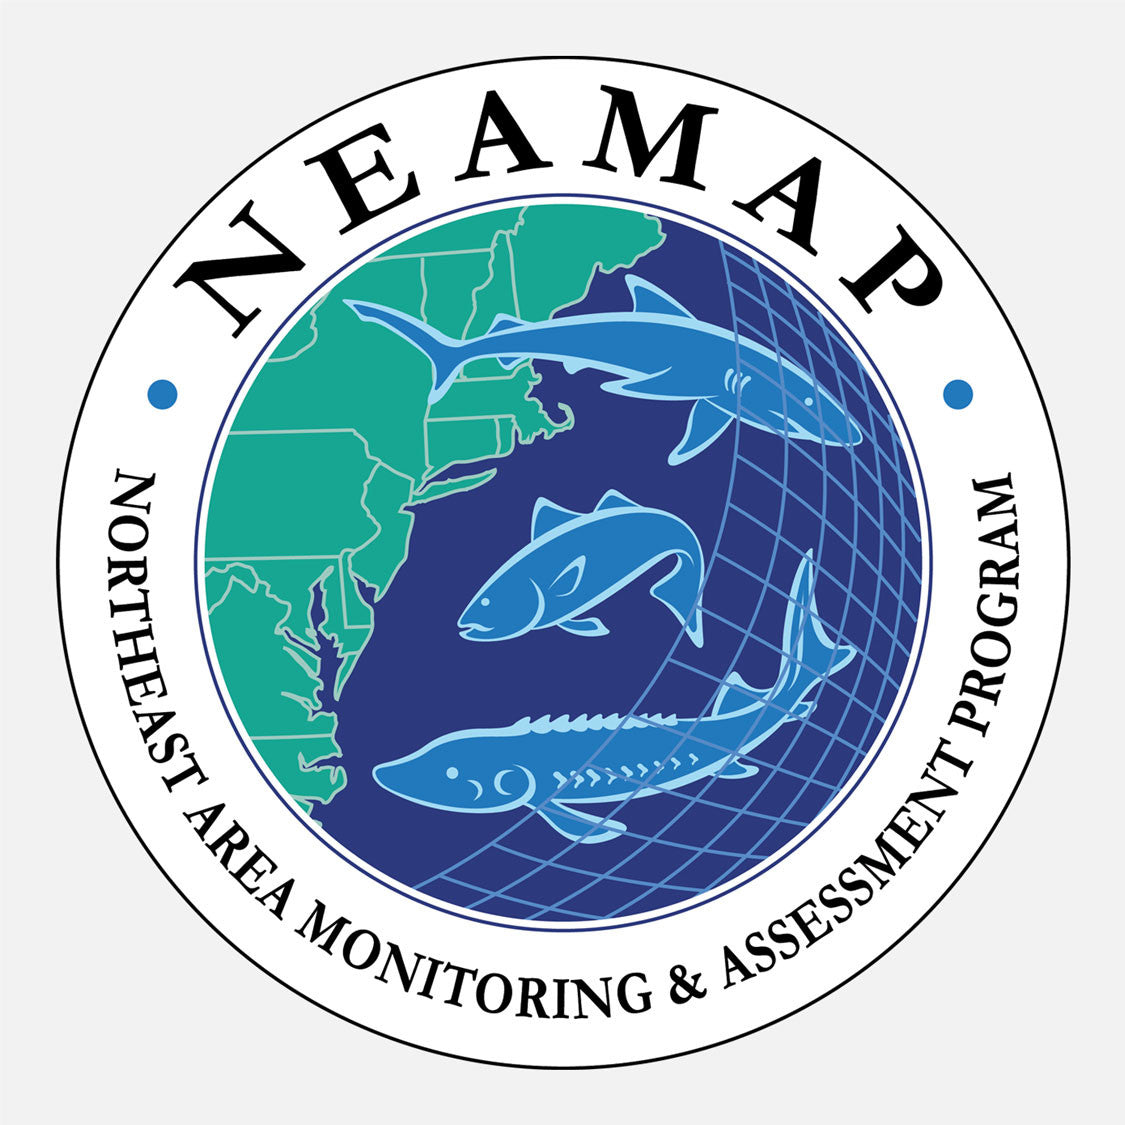 NEAMAP (Northeast Area Monitoring and Assessment Program) is an integrated, cooperative state/federal data collection program. The logo is a graphic of three fish over a net and the northeast coast of the US.